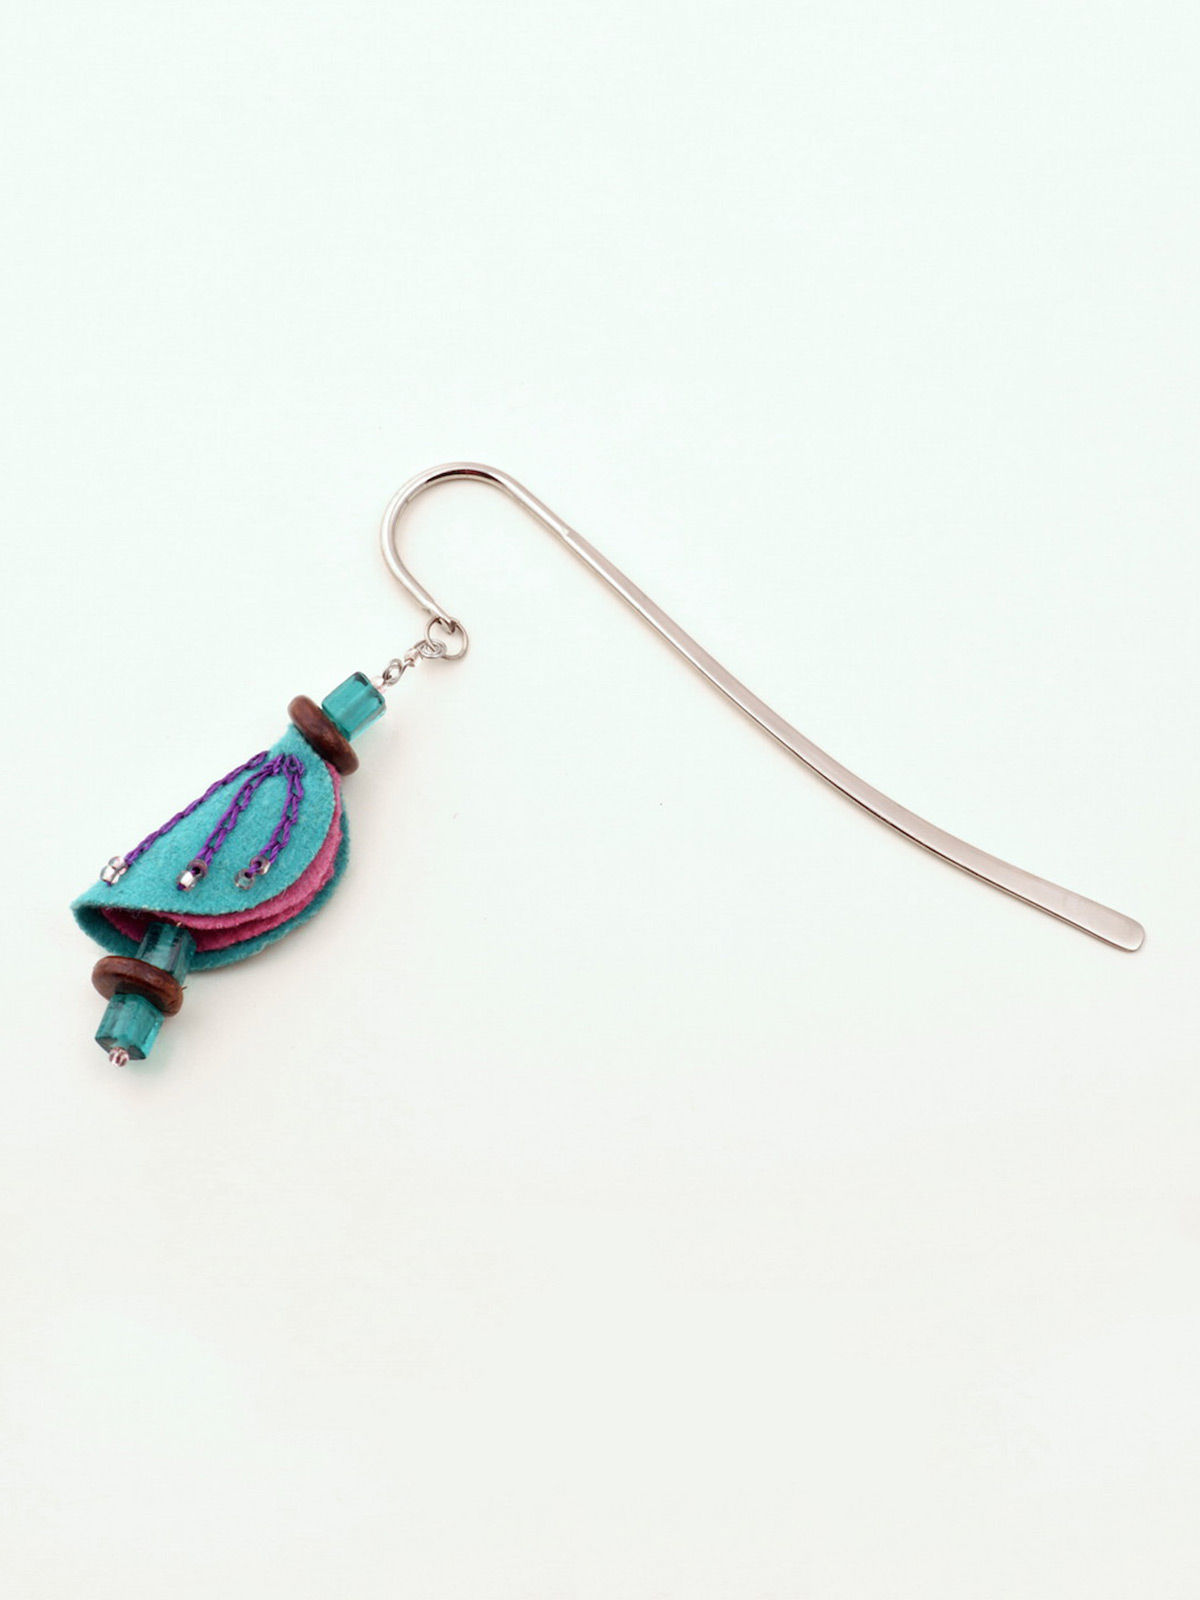 Chrysalis Bookmark - Teal